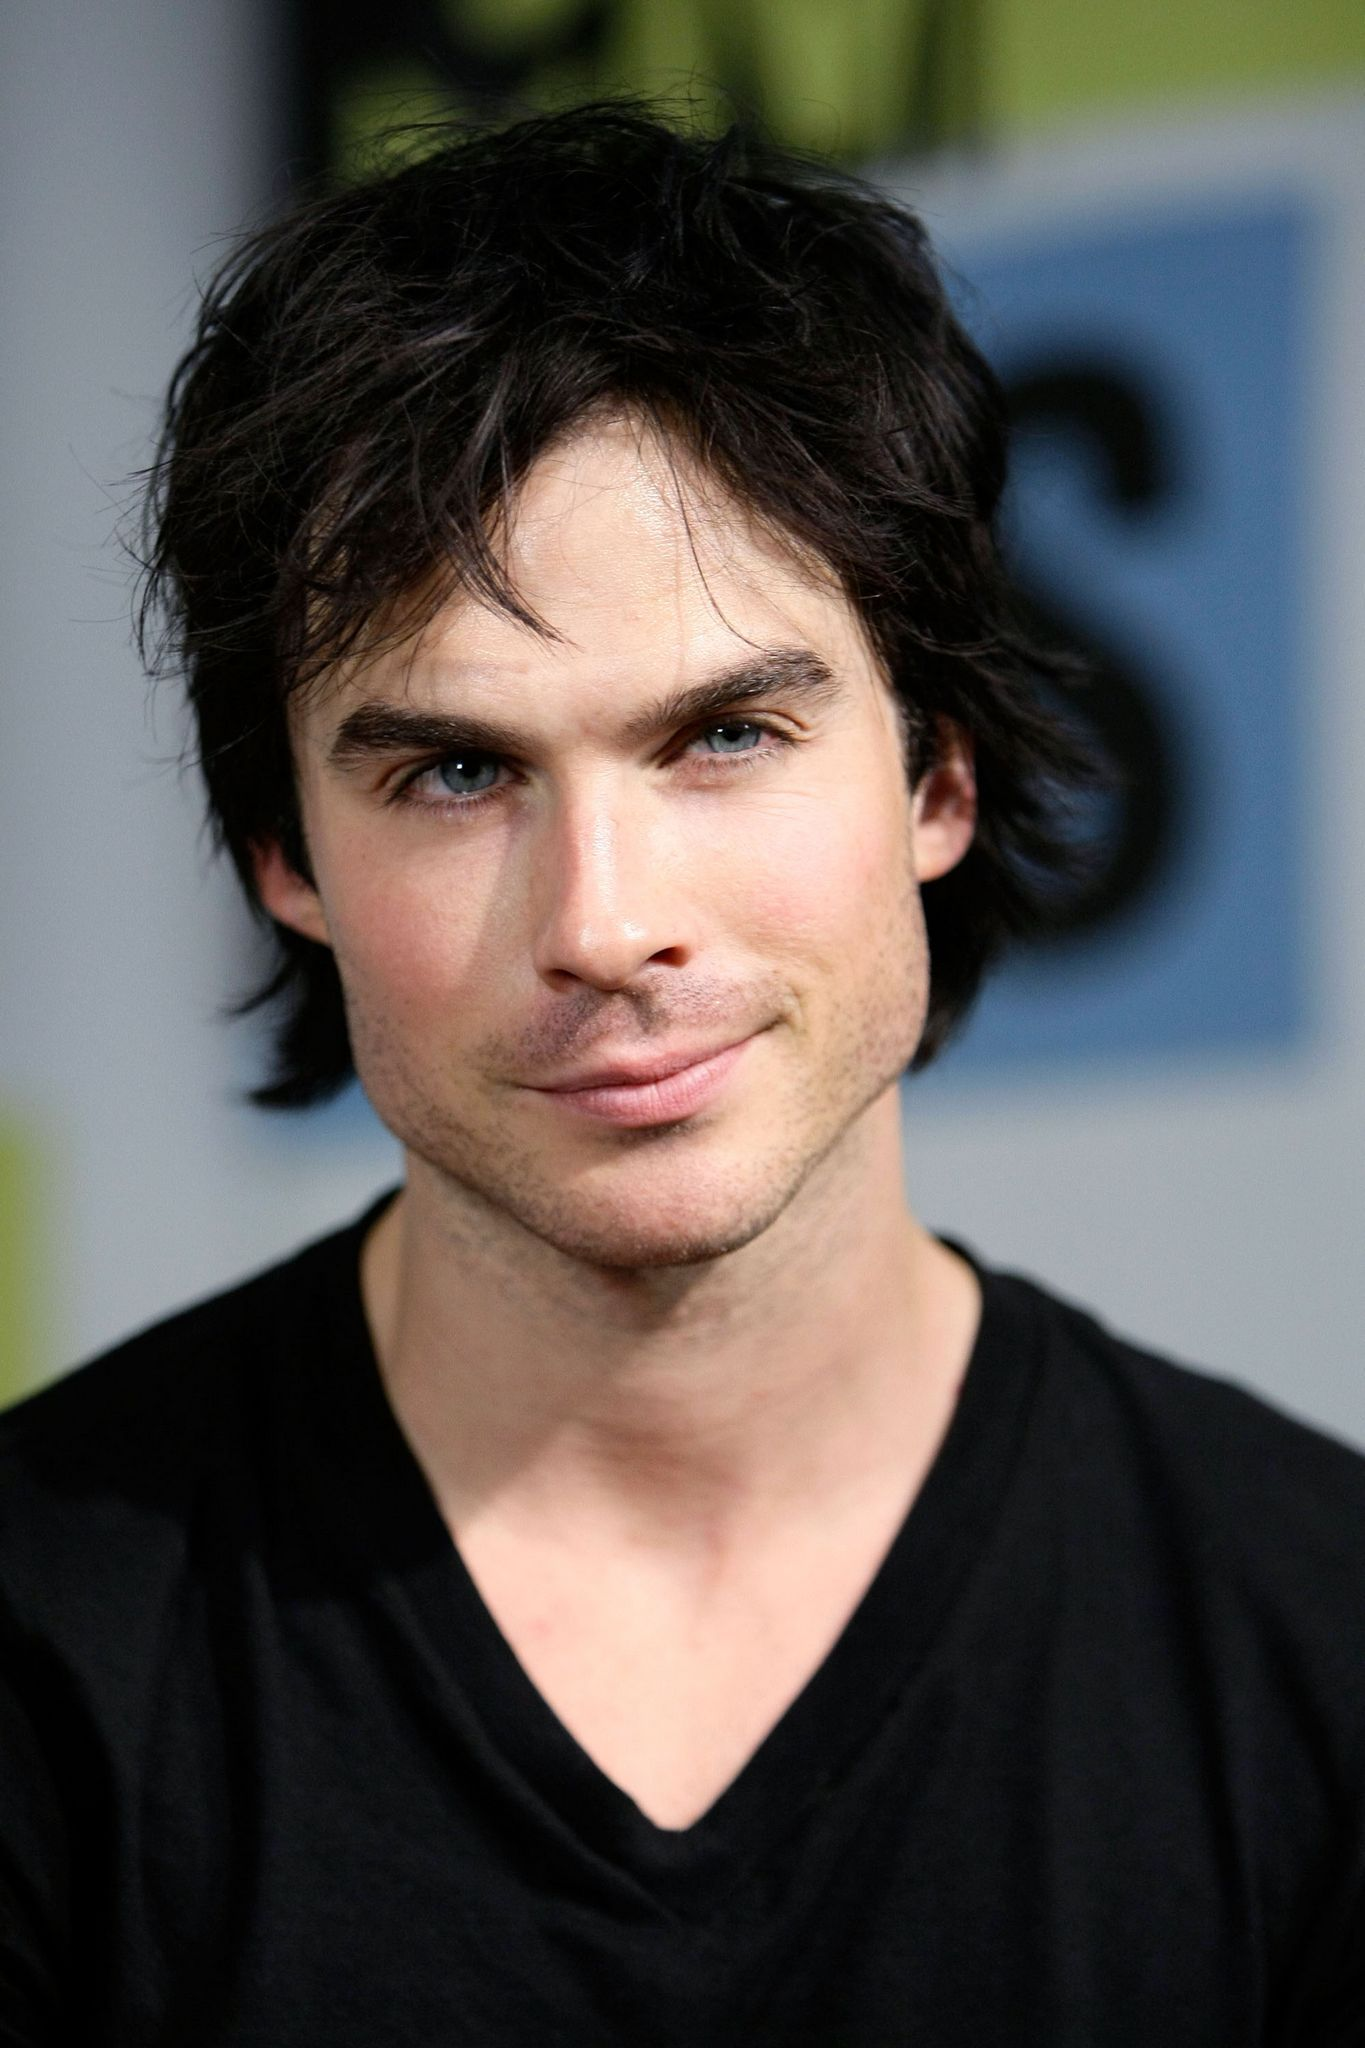 Top 10 Most Handsome Good Looking Hollywood Actors Pouted Com Ian Somerhalder Hollywood Actor Damon Salvatore Vampire Diaries